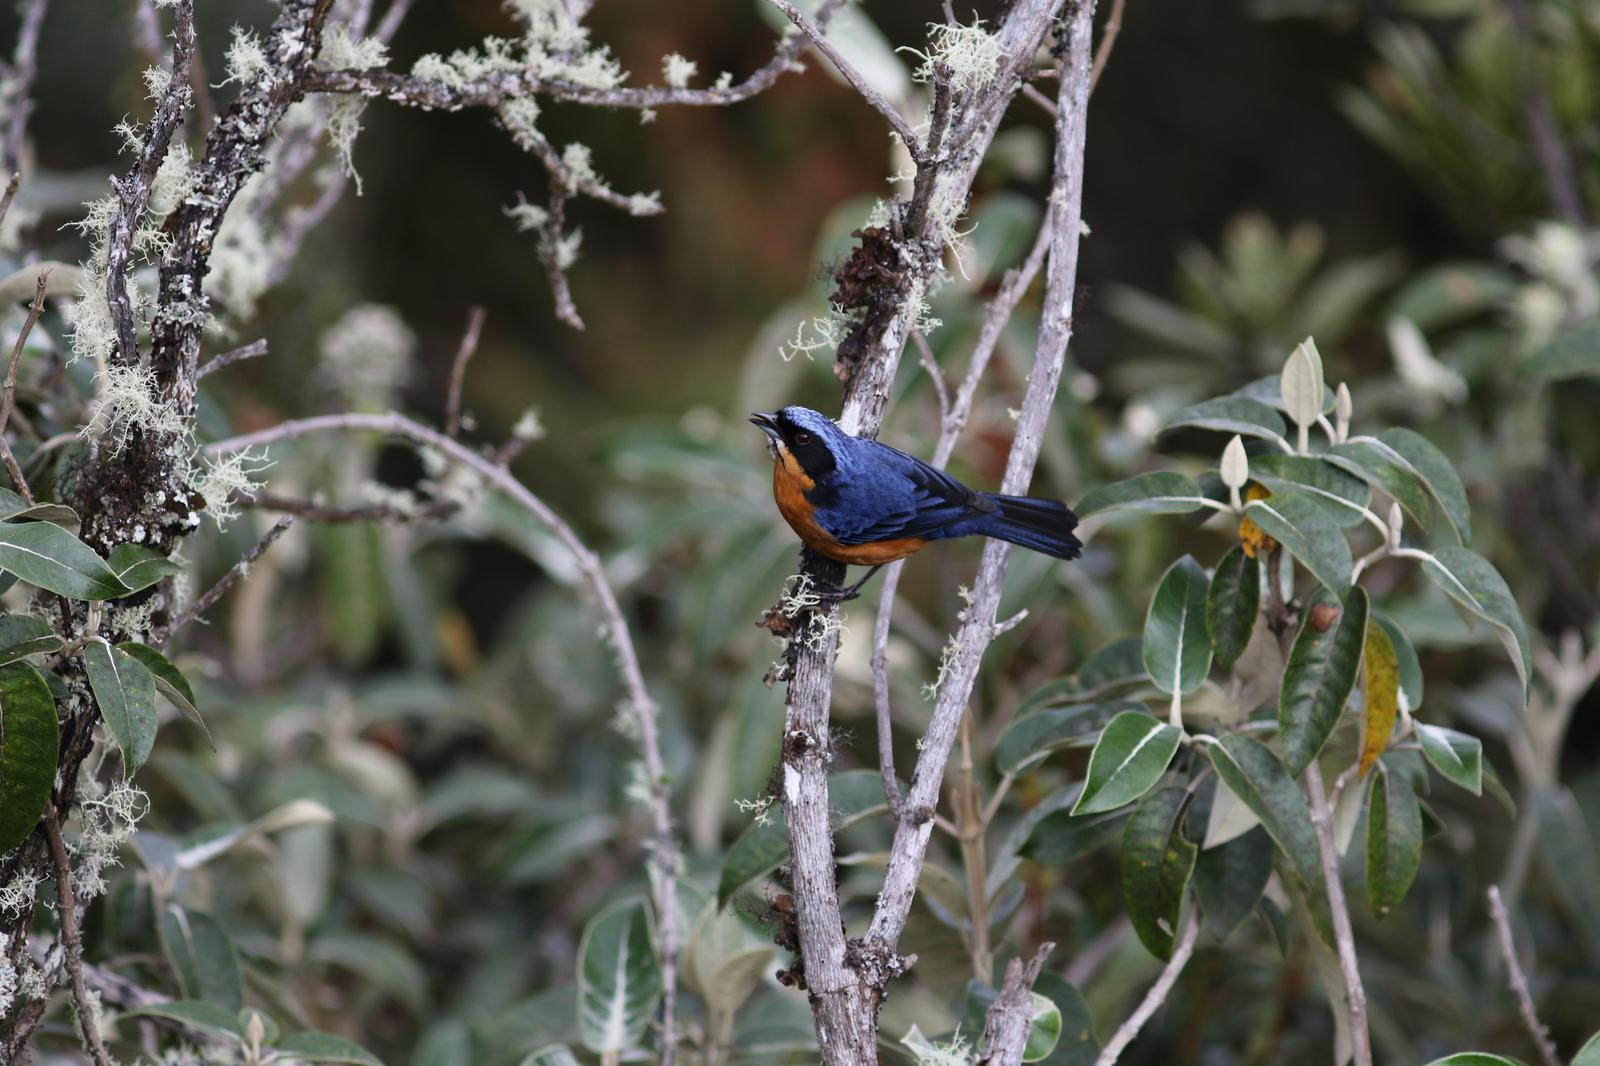 Chestnut-bellied Mountain-Tanager Photo by Leonardo Garrigues